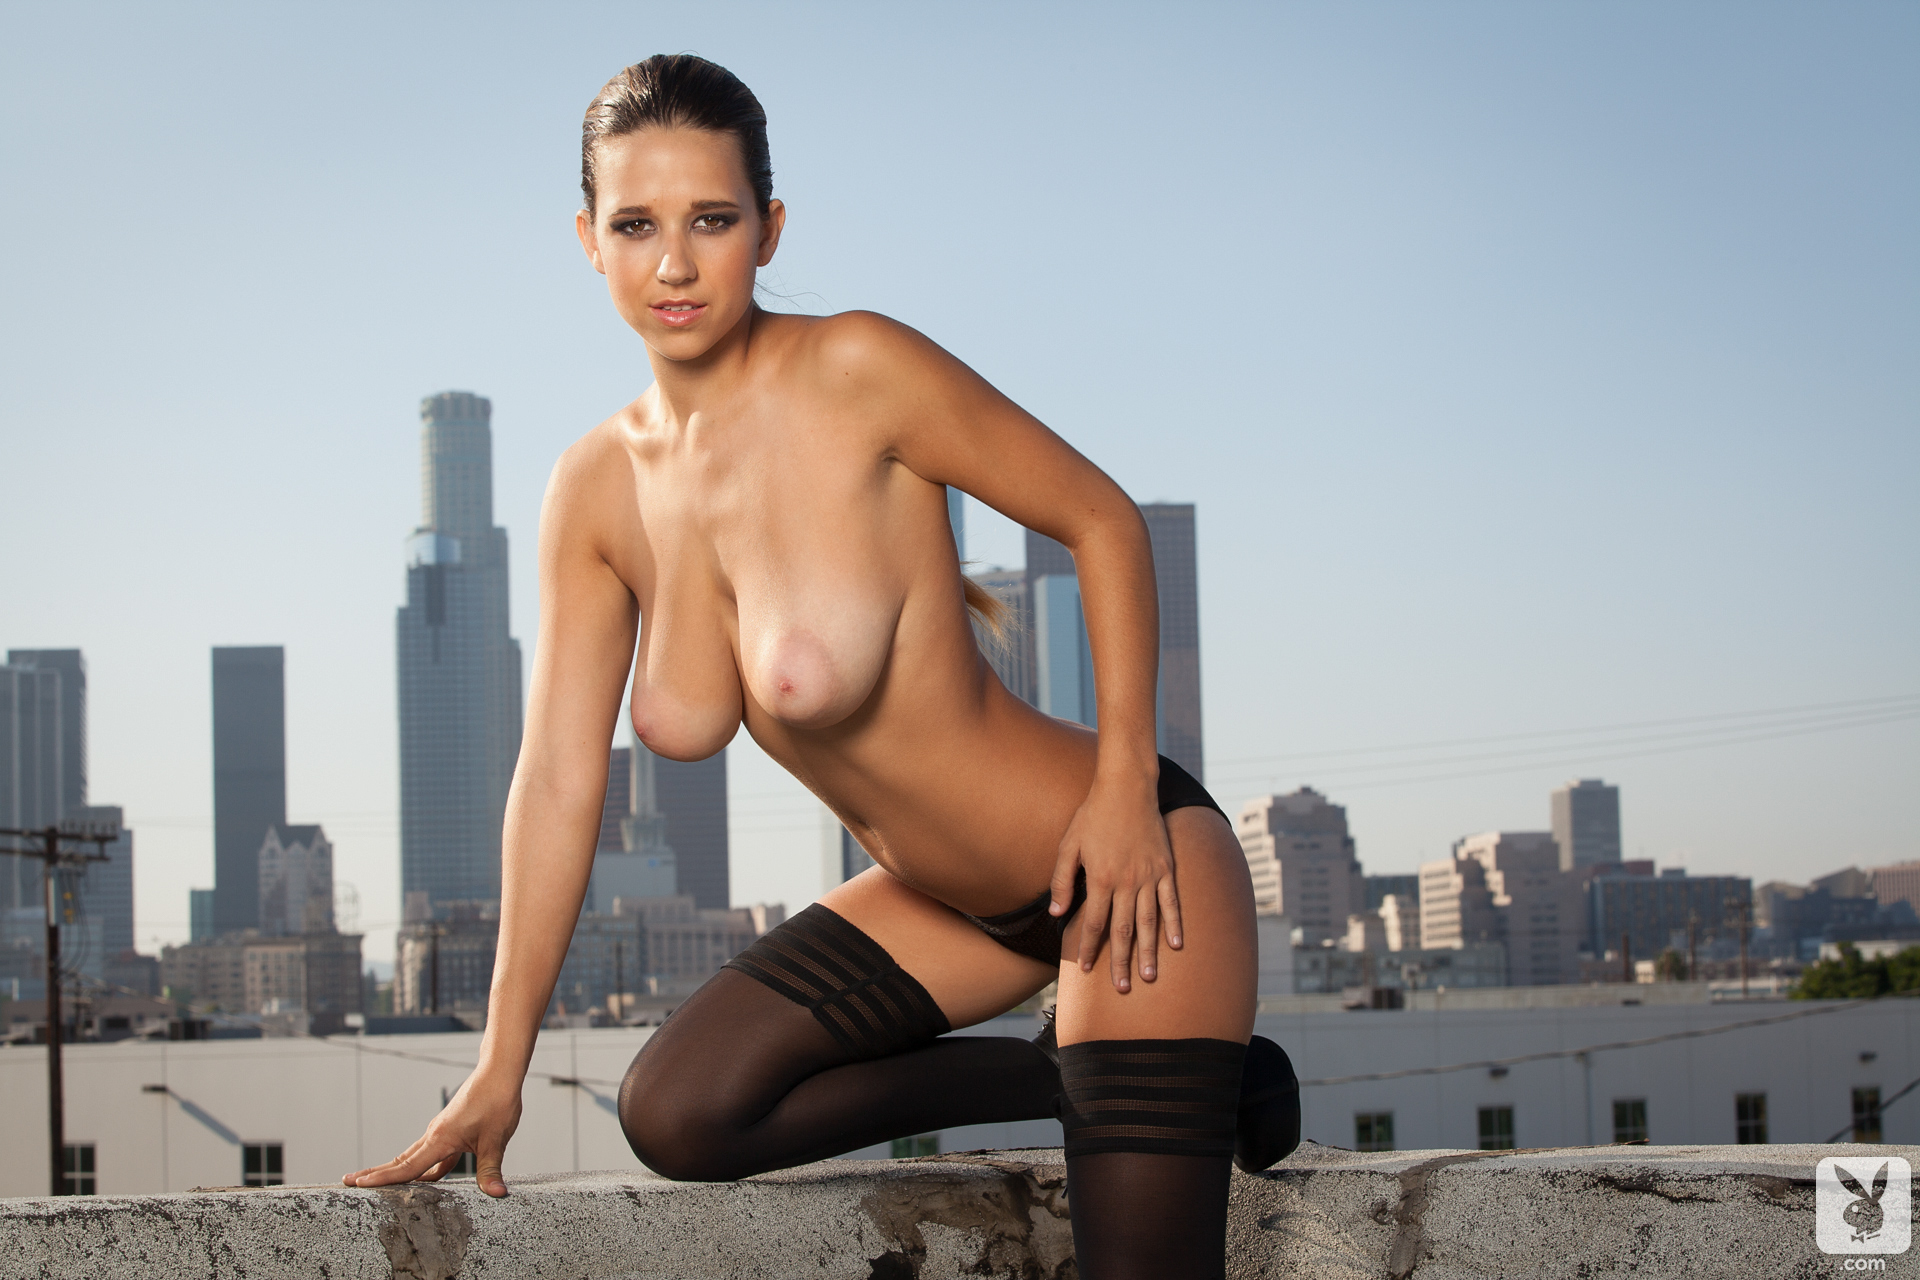 carlye denise nude pictures. rating = 9.53/10